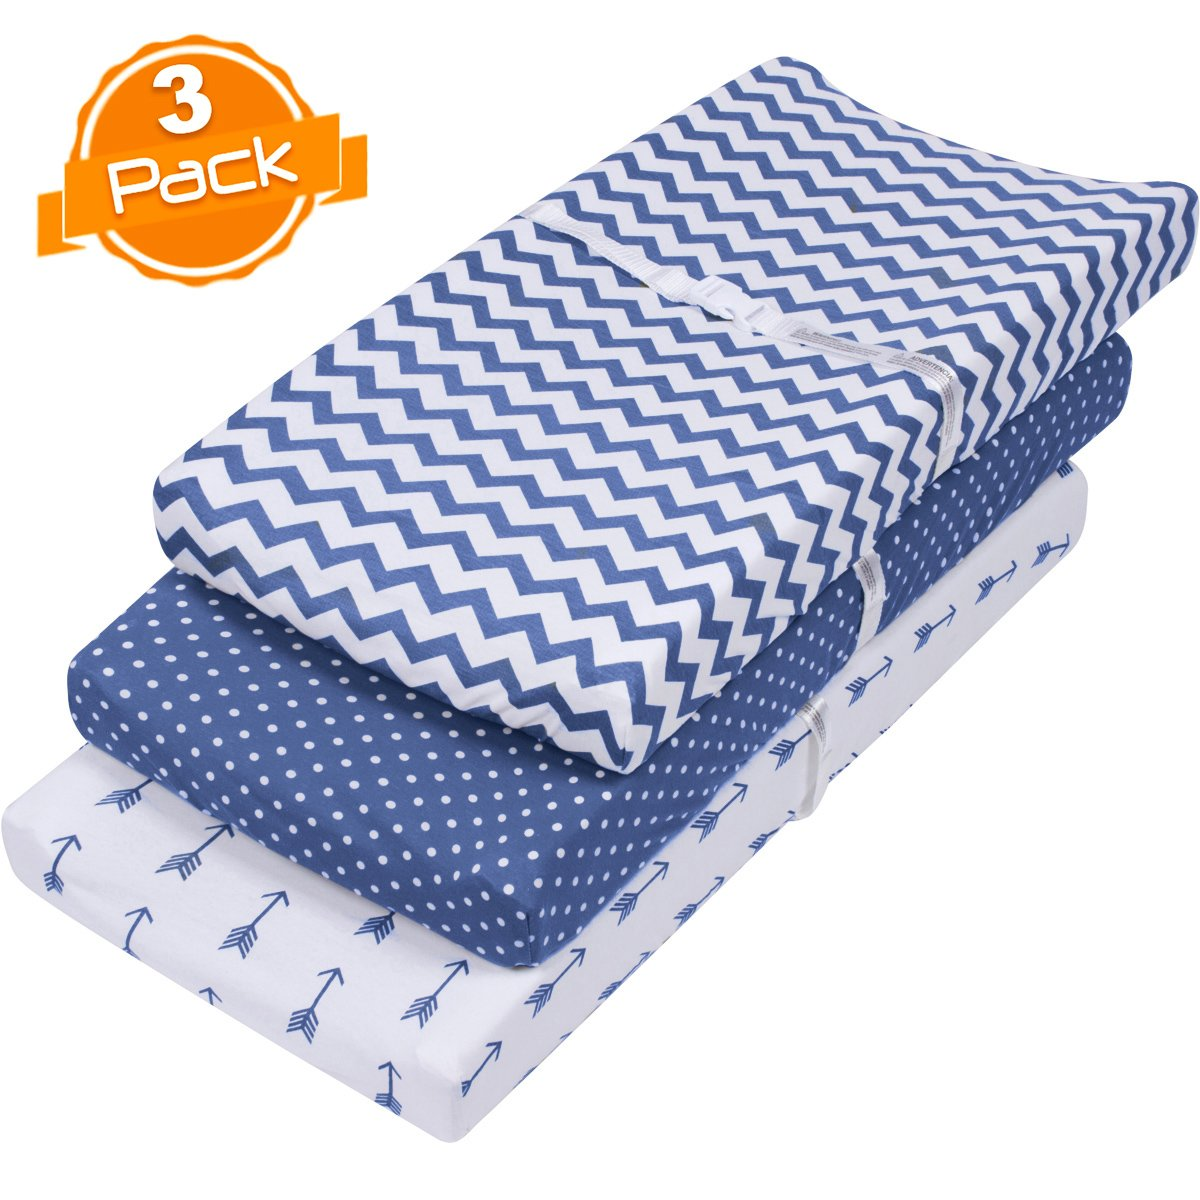 Changing Pad Cover Set | Cradle Bassinet Sheets/Change Table Covers for Boys & Girls | Super Soft 100% Jersey Knit Cotton | Navy and White | 150 GSM | 3 Pack BaeBae & Company